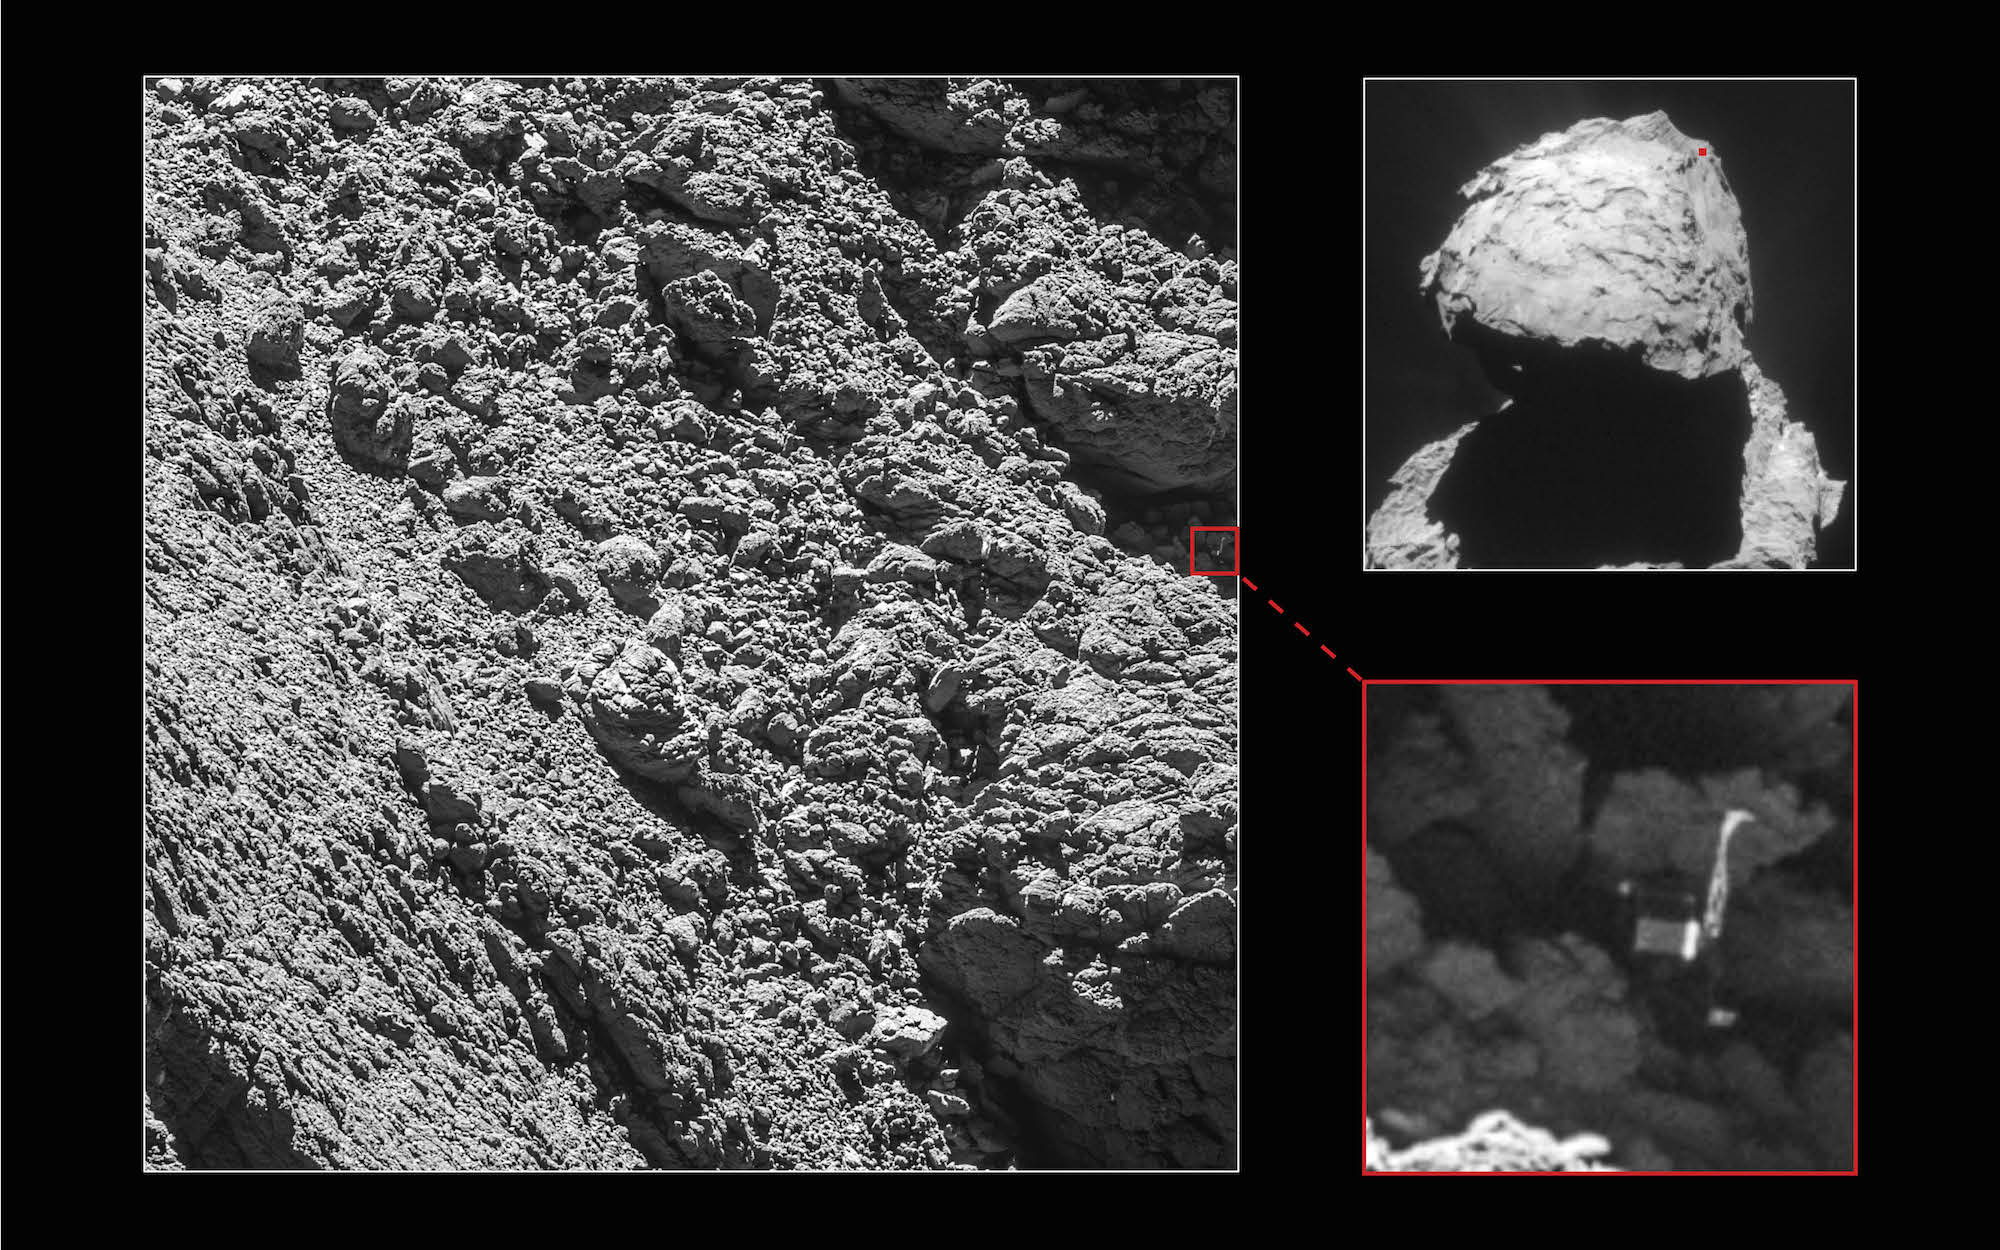 ESA: Rosetta space probe finds lost Philae lander on comet